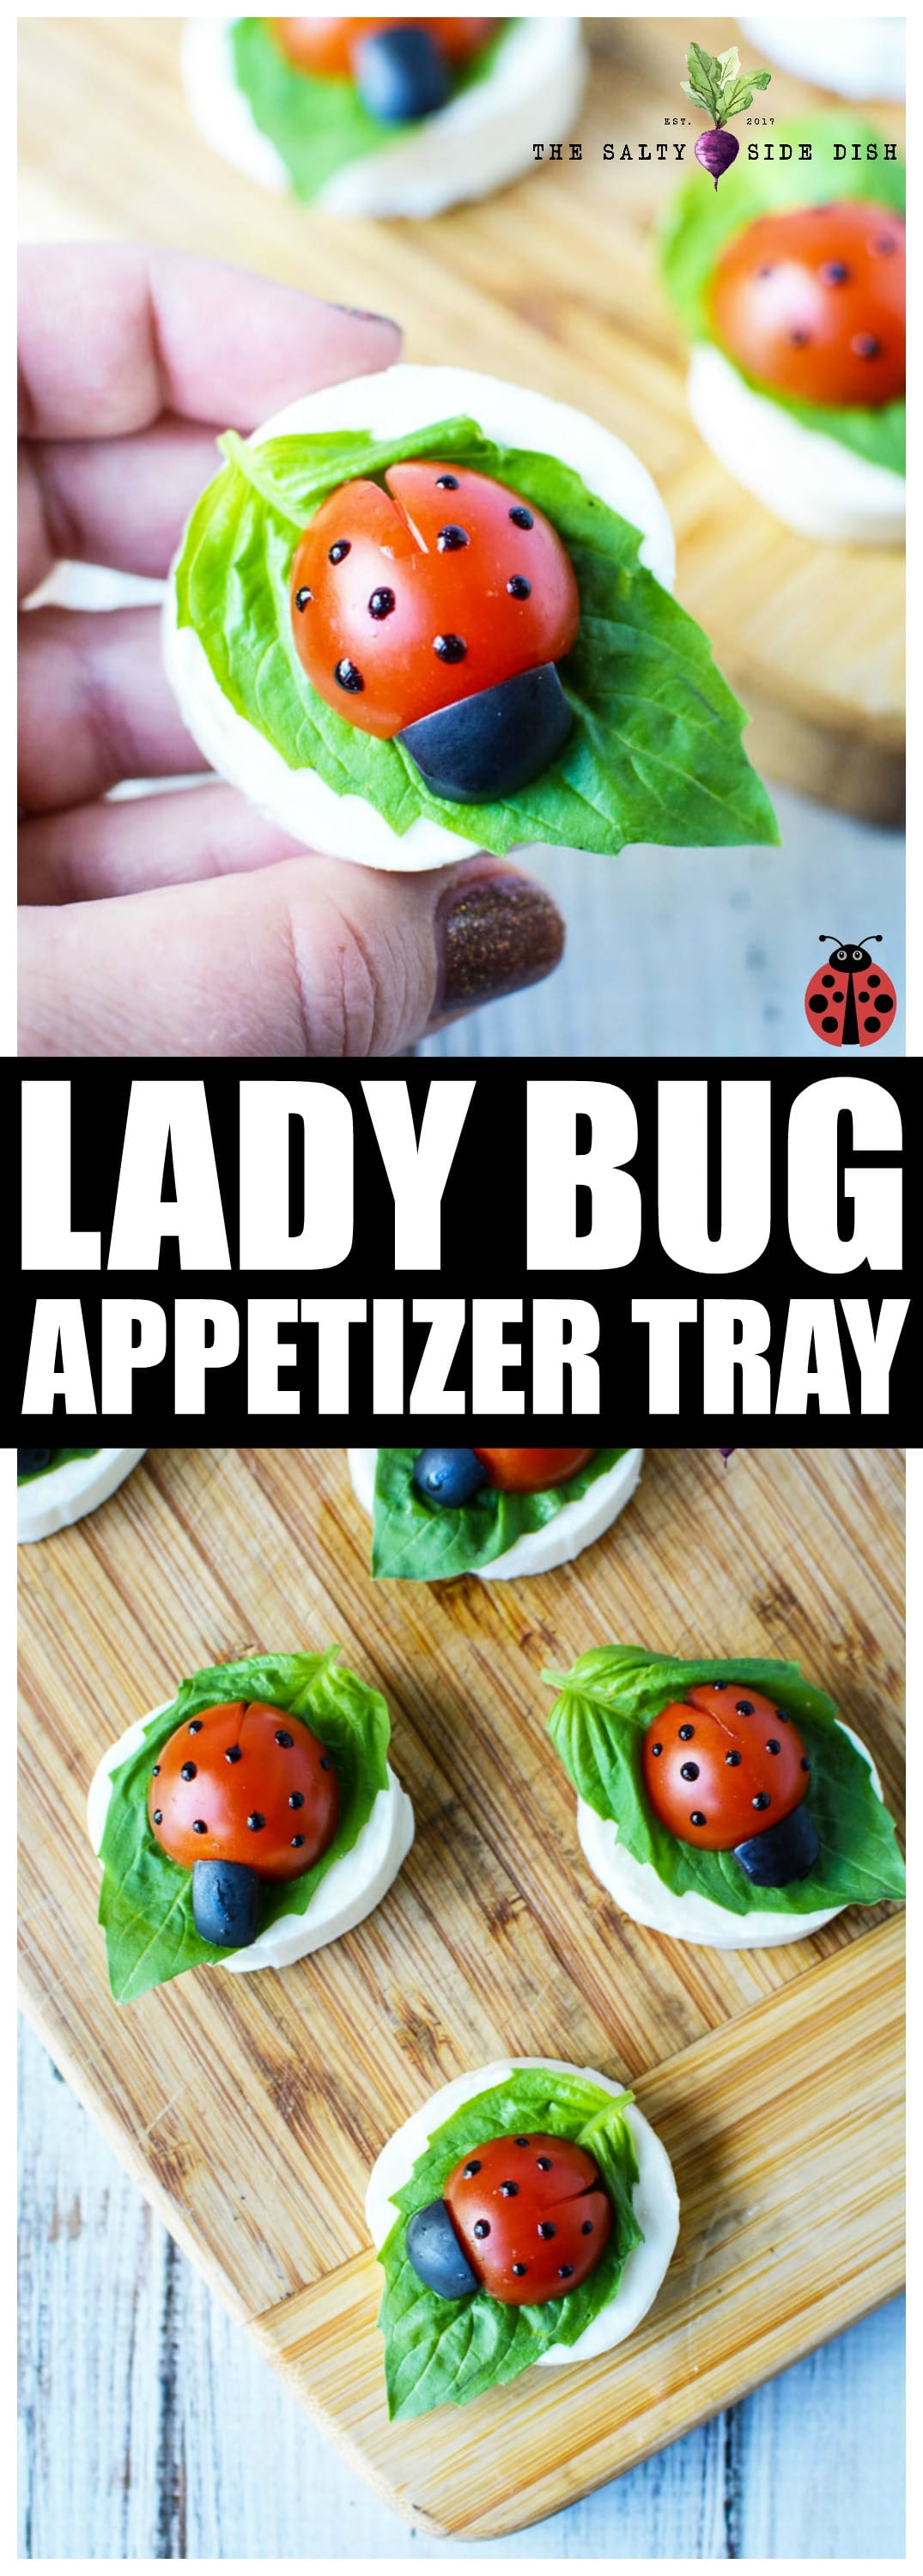 Caprese Salad Appetizer Bites | Mini LadyBug Party Platter Recipe perfect for a side dish or appetizer tray #appetizer #sidedish #foodanimal #recipes #party #platter